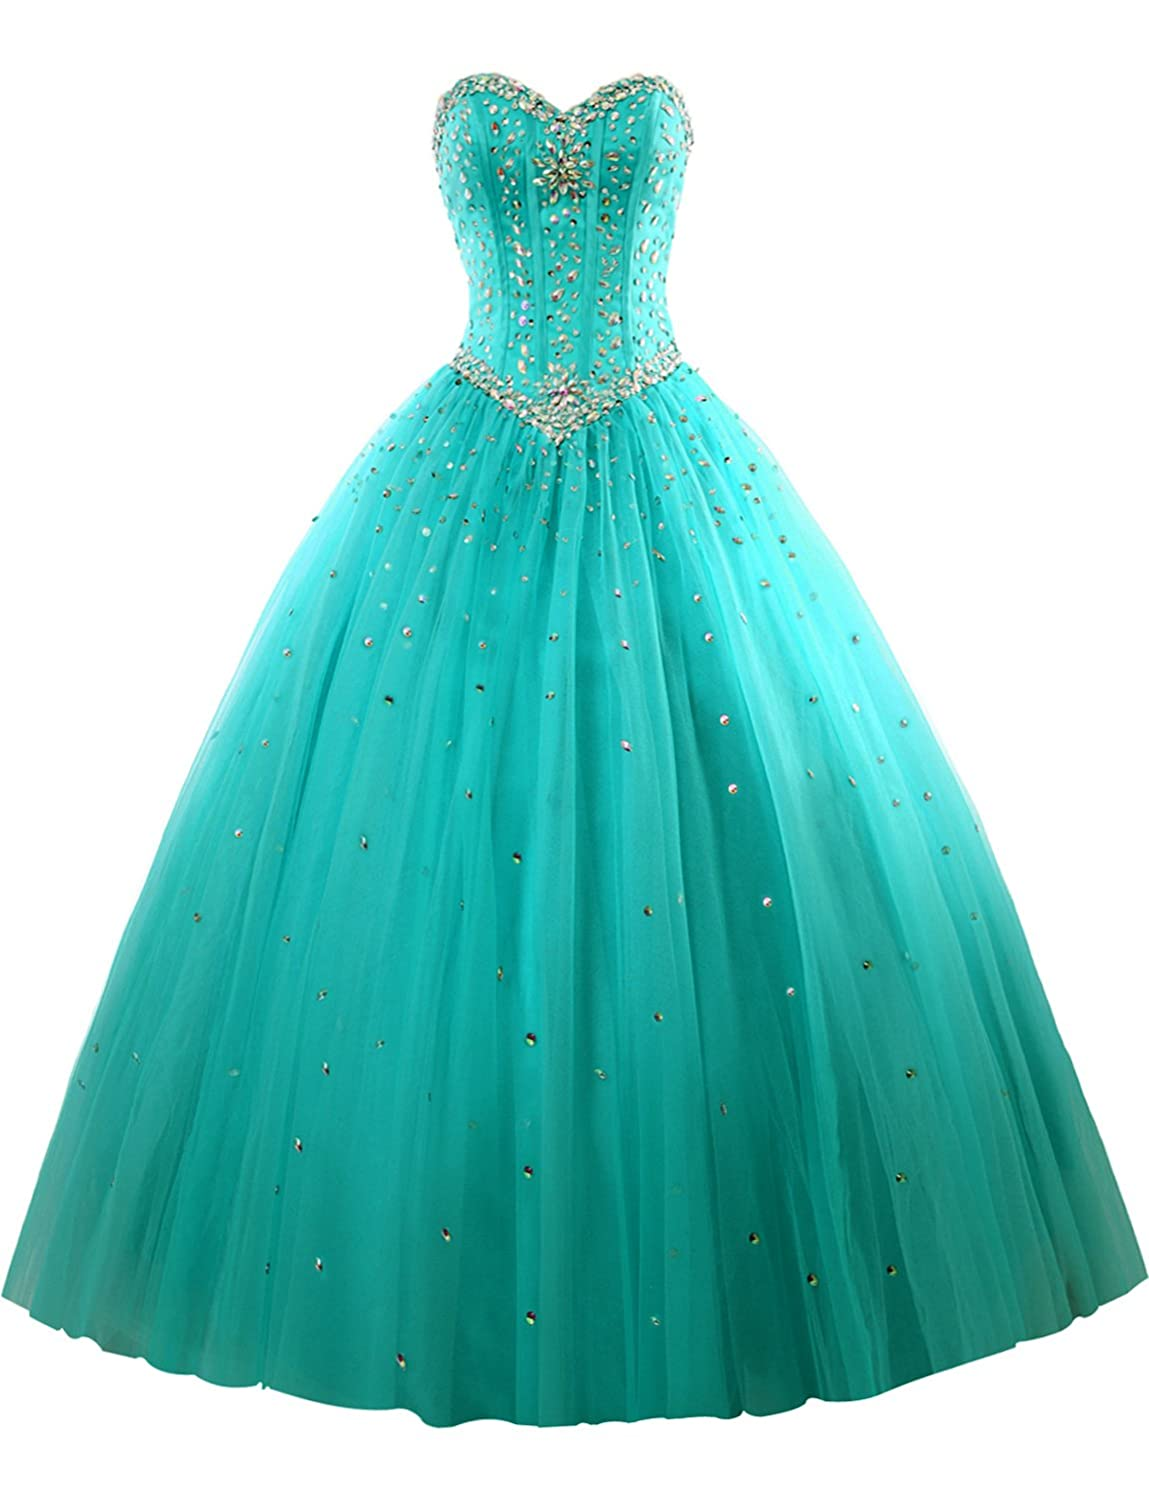 38ddca9070c durable service Erosebridal Long Prom Dress Tulle Sweetheart Beaded  Quinceanera Dress